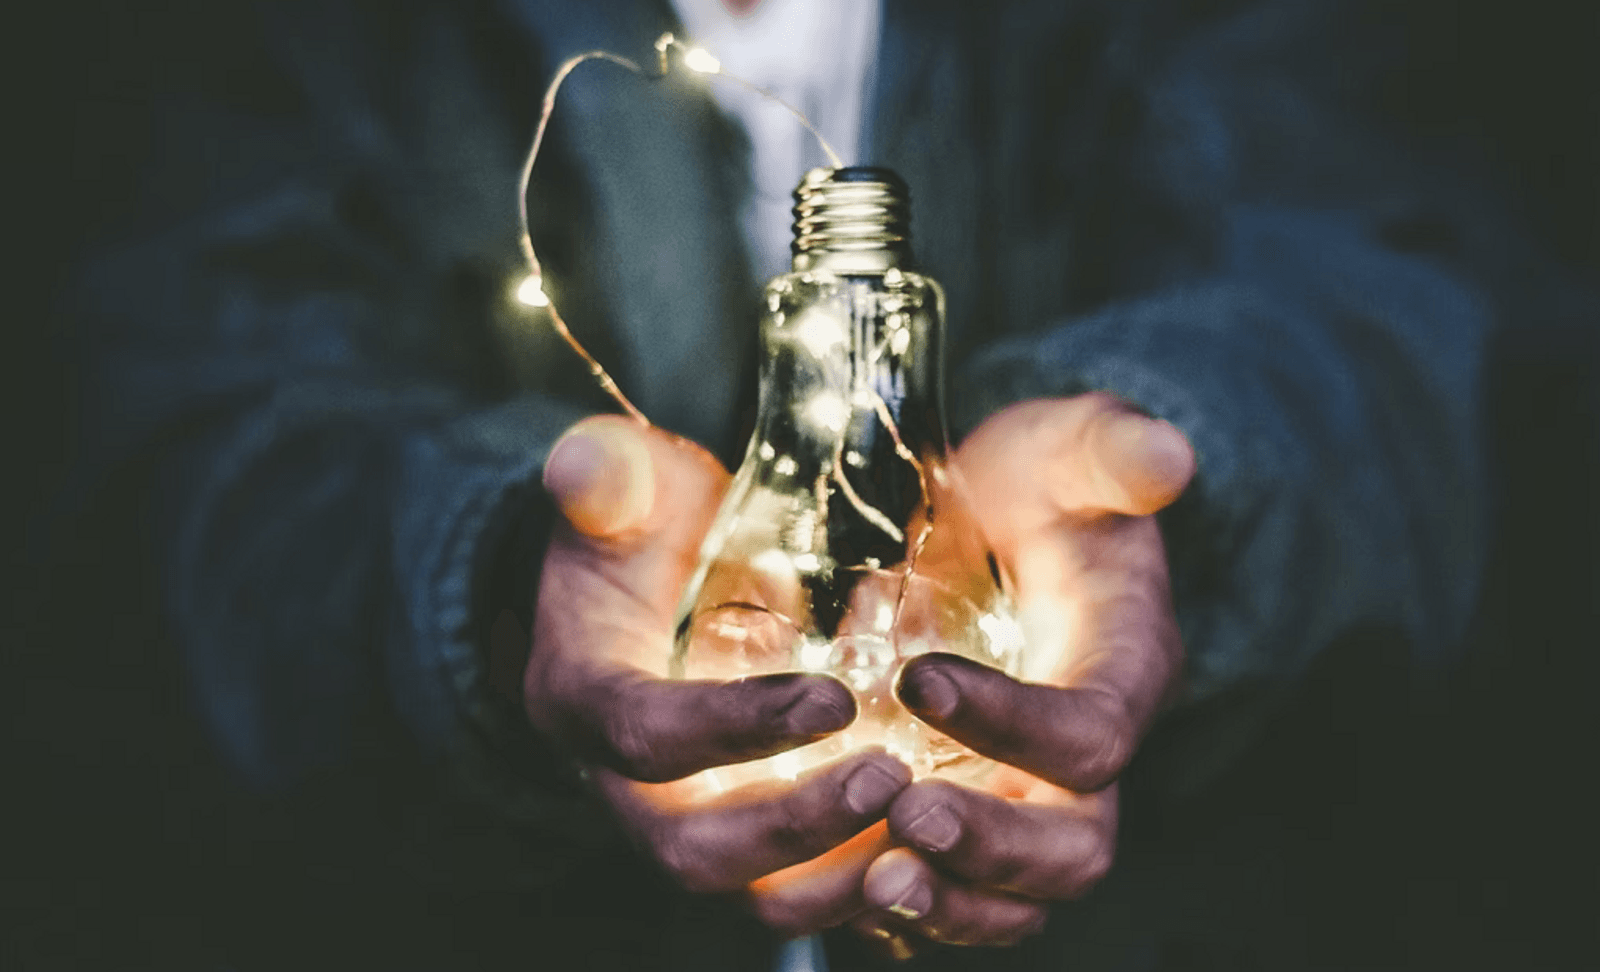 hands-holding-lightbulb-filled-with-fairy-lights